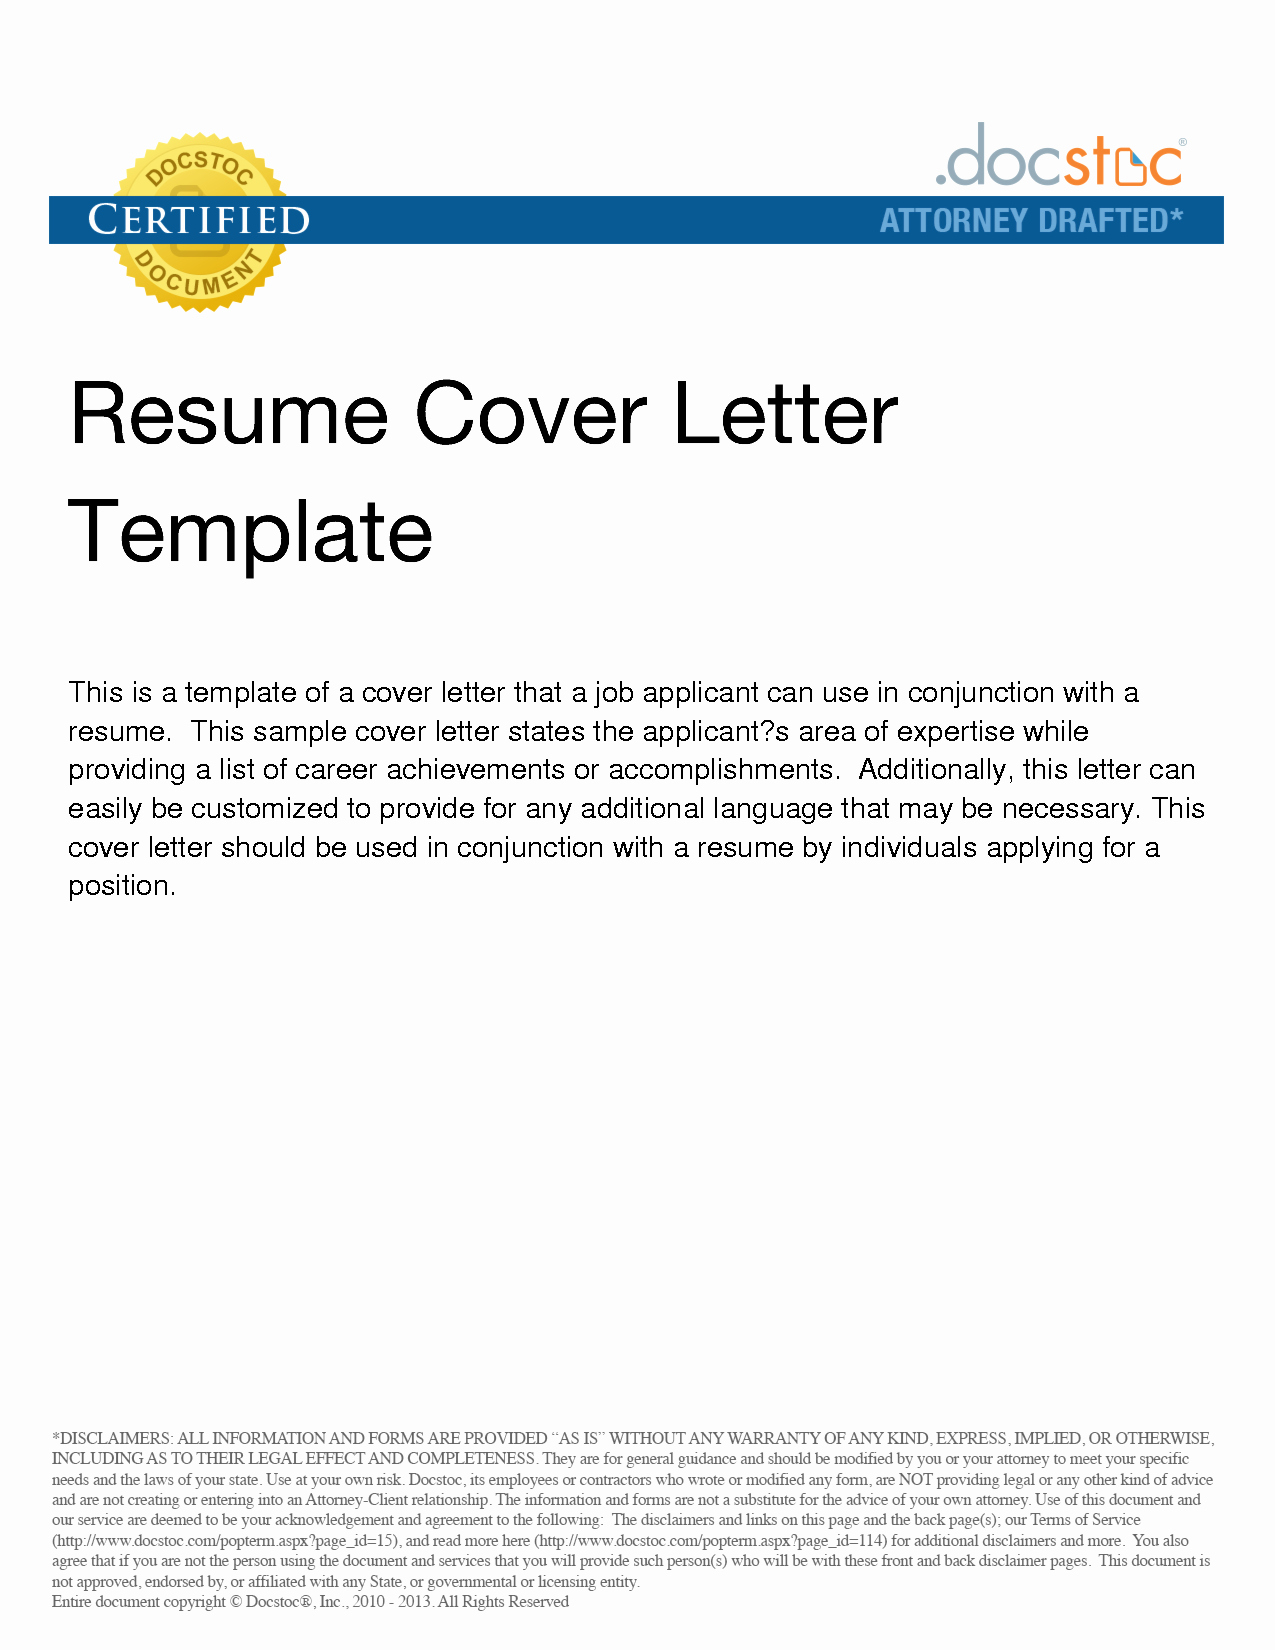 Insurance Cancellation Letter Template - 20 Health Insurance Termination Letter